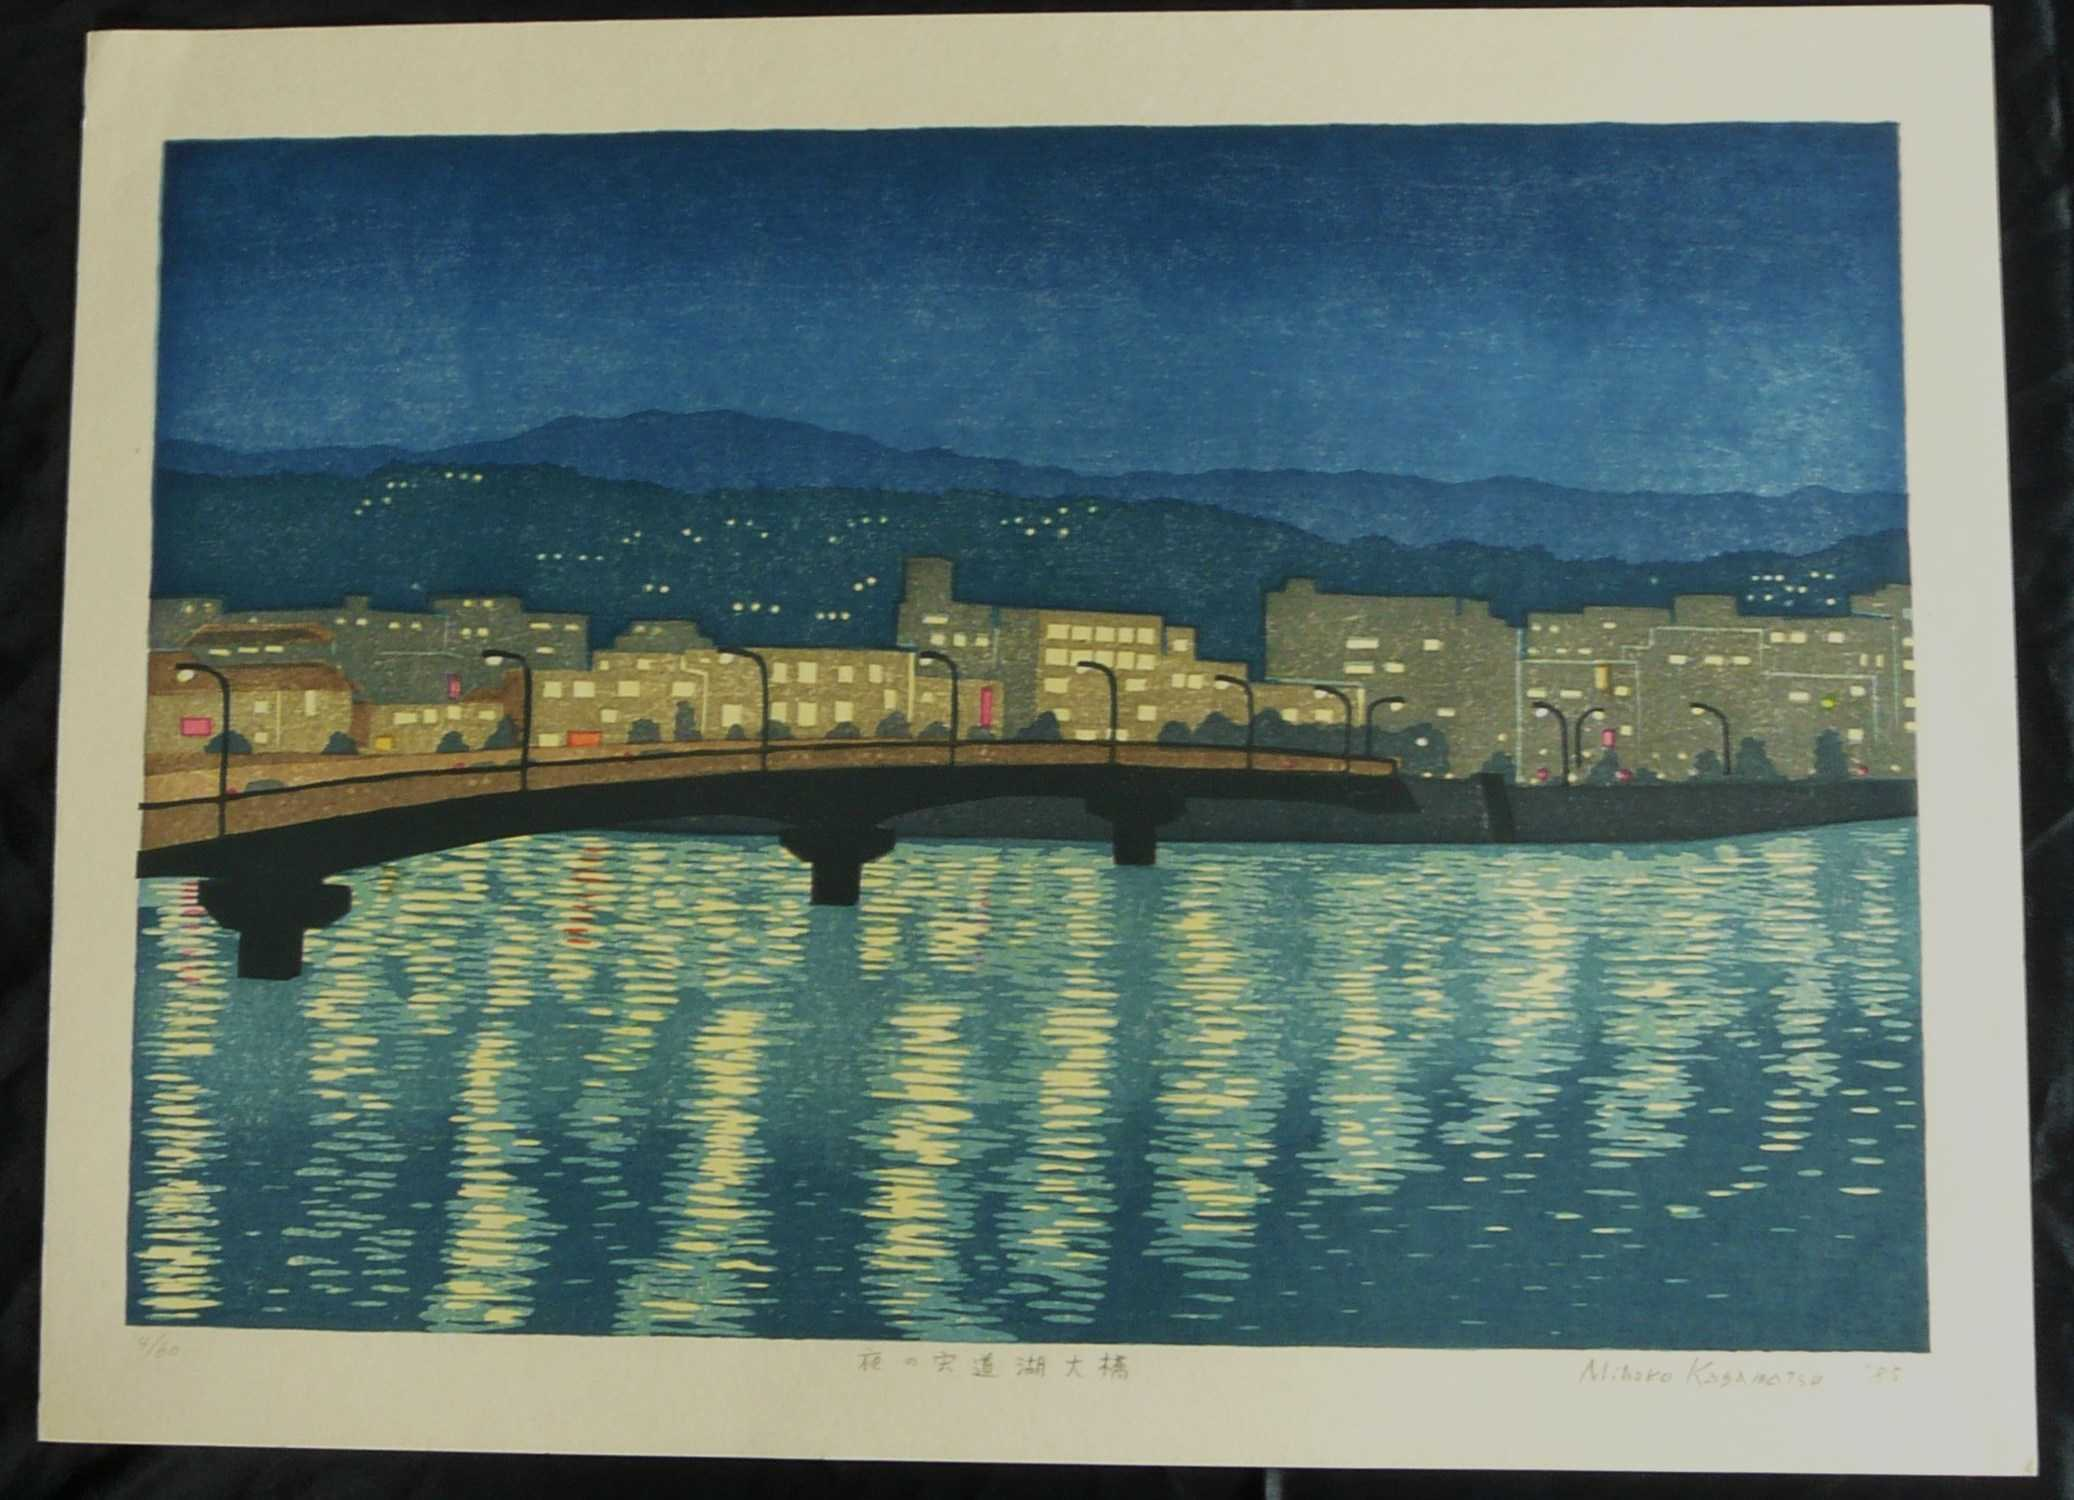 MIHIKO KASAMATSU: #P4201 SHINGI LAKE AT NIGHT